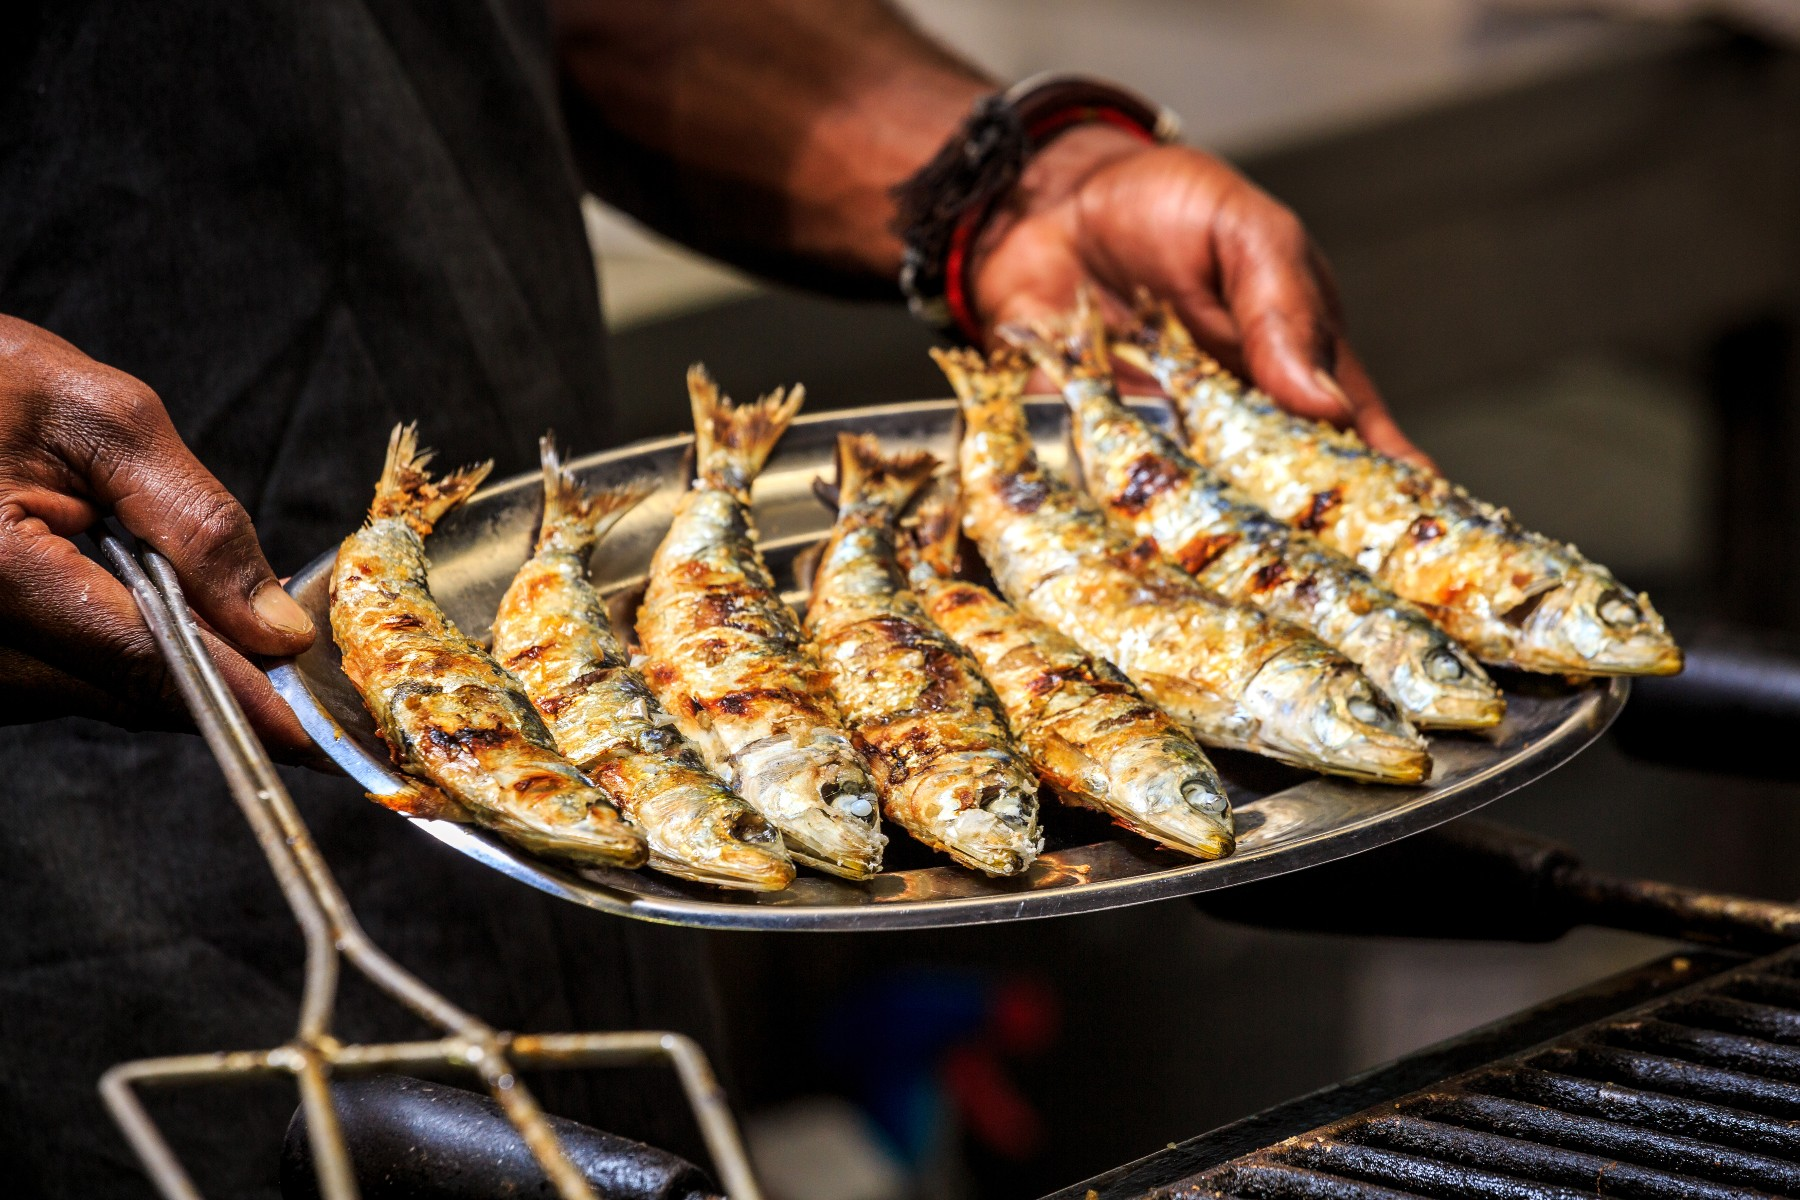 grilled fish in Portugal